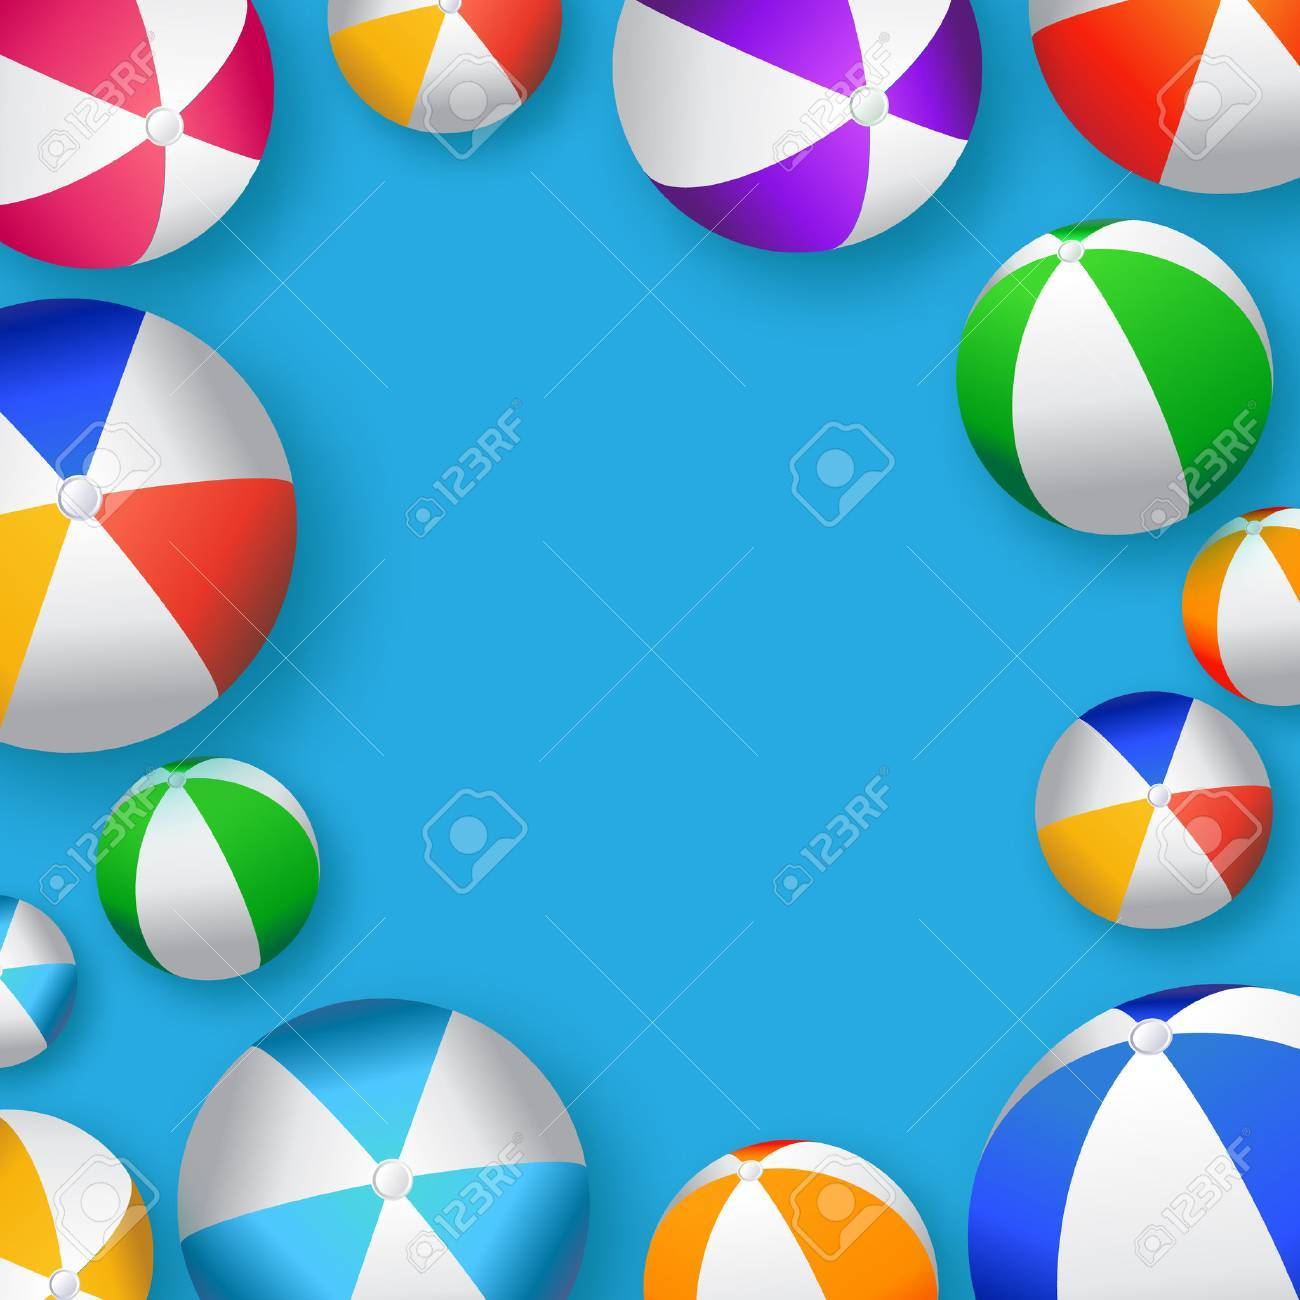 Realistic Colorful Beach Balls - Rubber or Plastic Material.Vector Illustration - 53342187